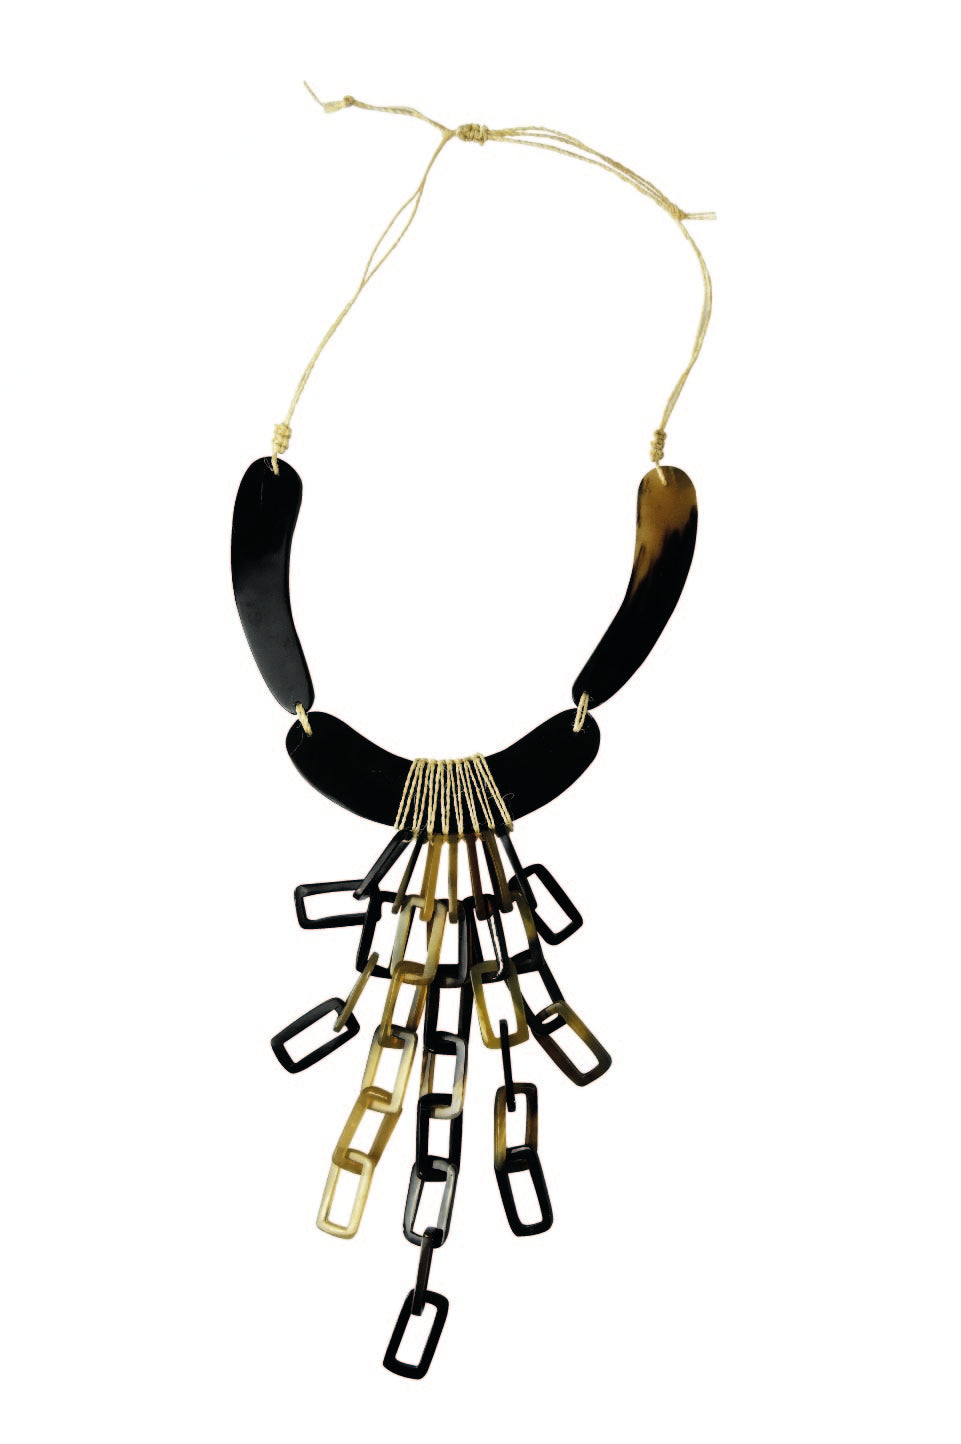 CARALARGA | Rio Necklace